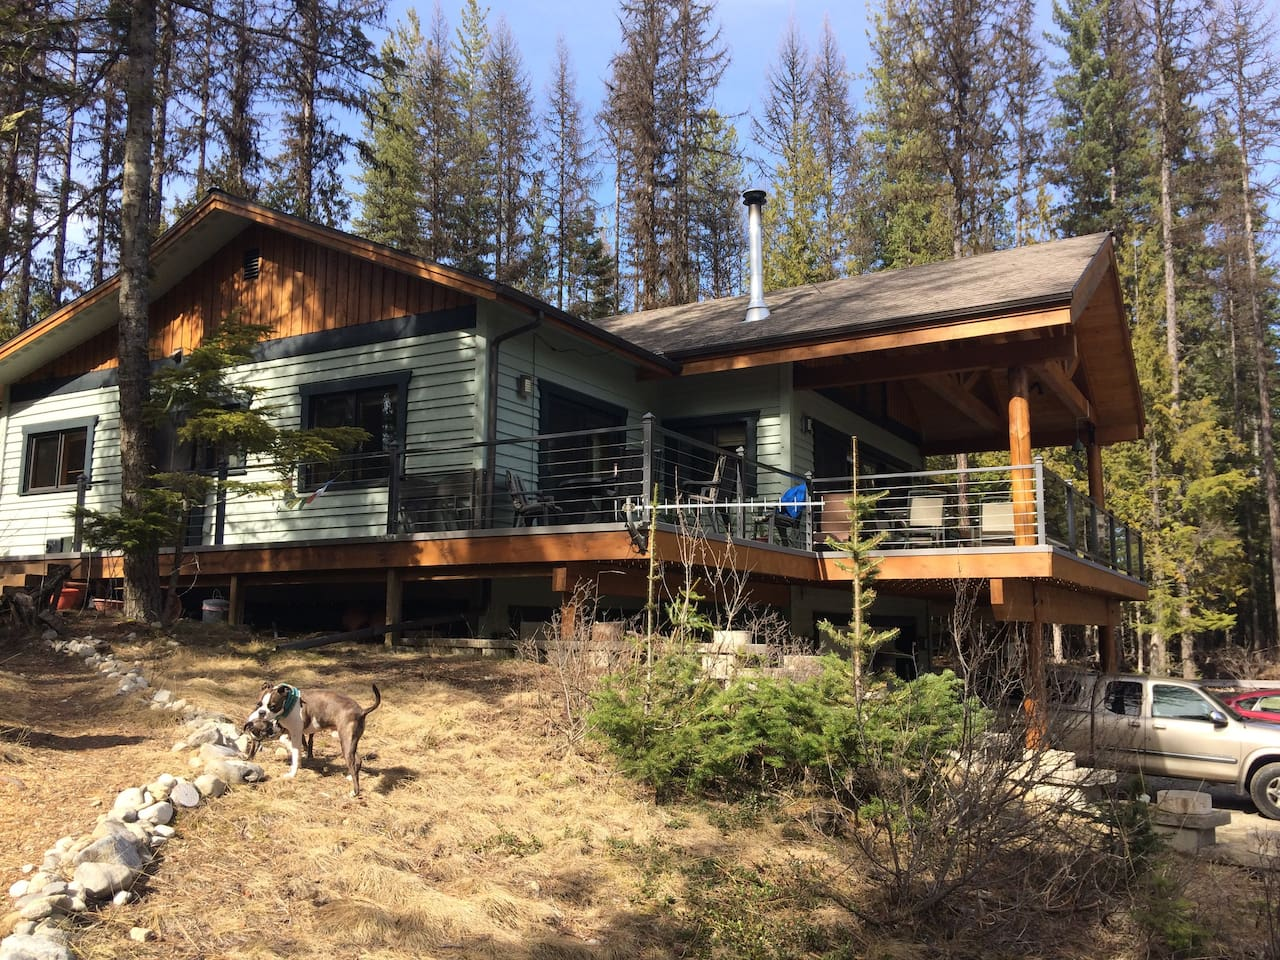 This is our home overlooking Priest lake, with your bedroom slider door opening onto the deck.